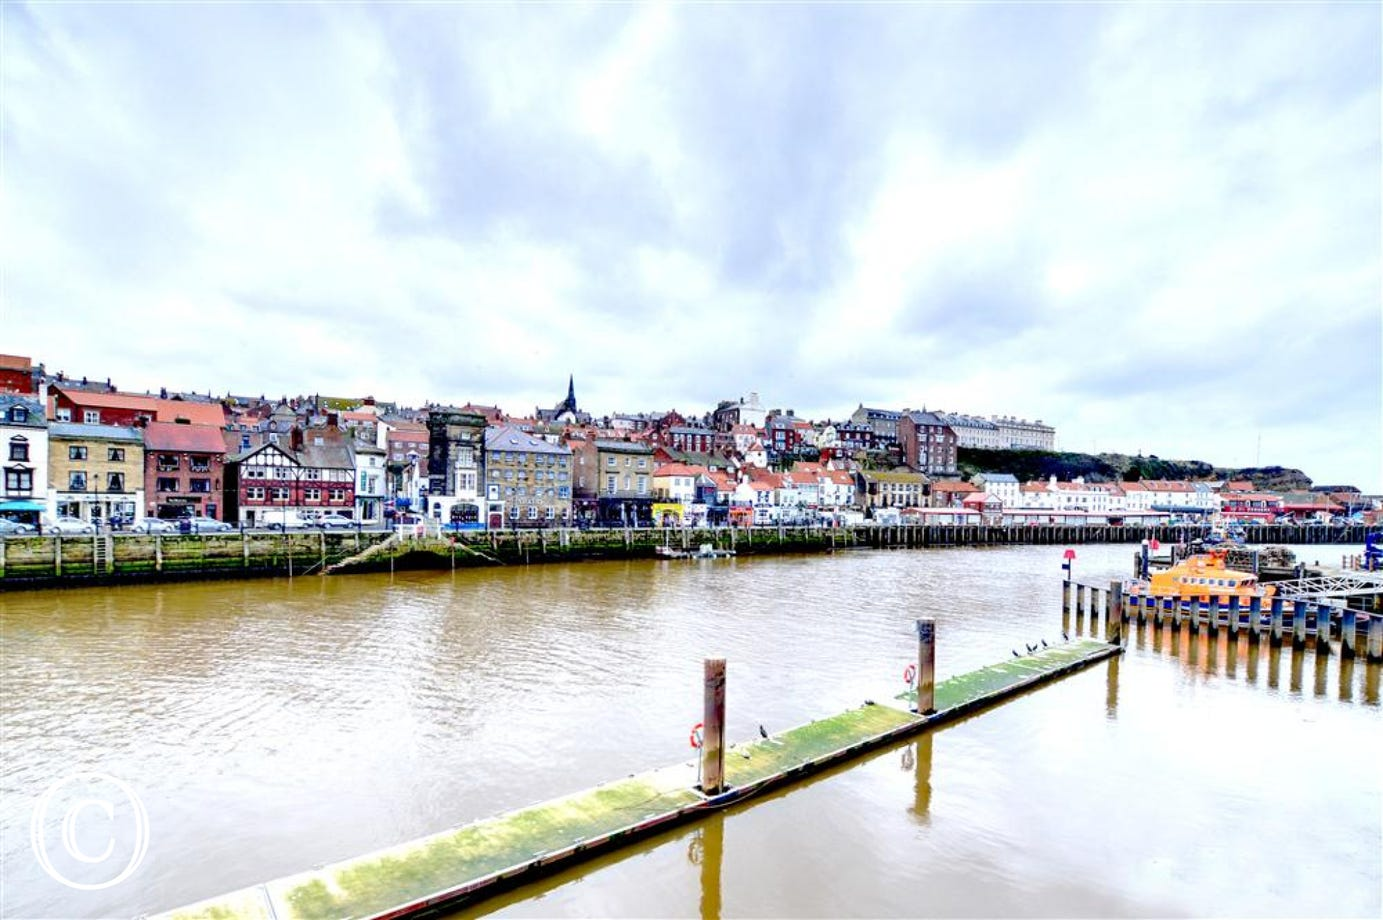 Extensive views of Whitby's West side on the opposite side of the River Esk.